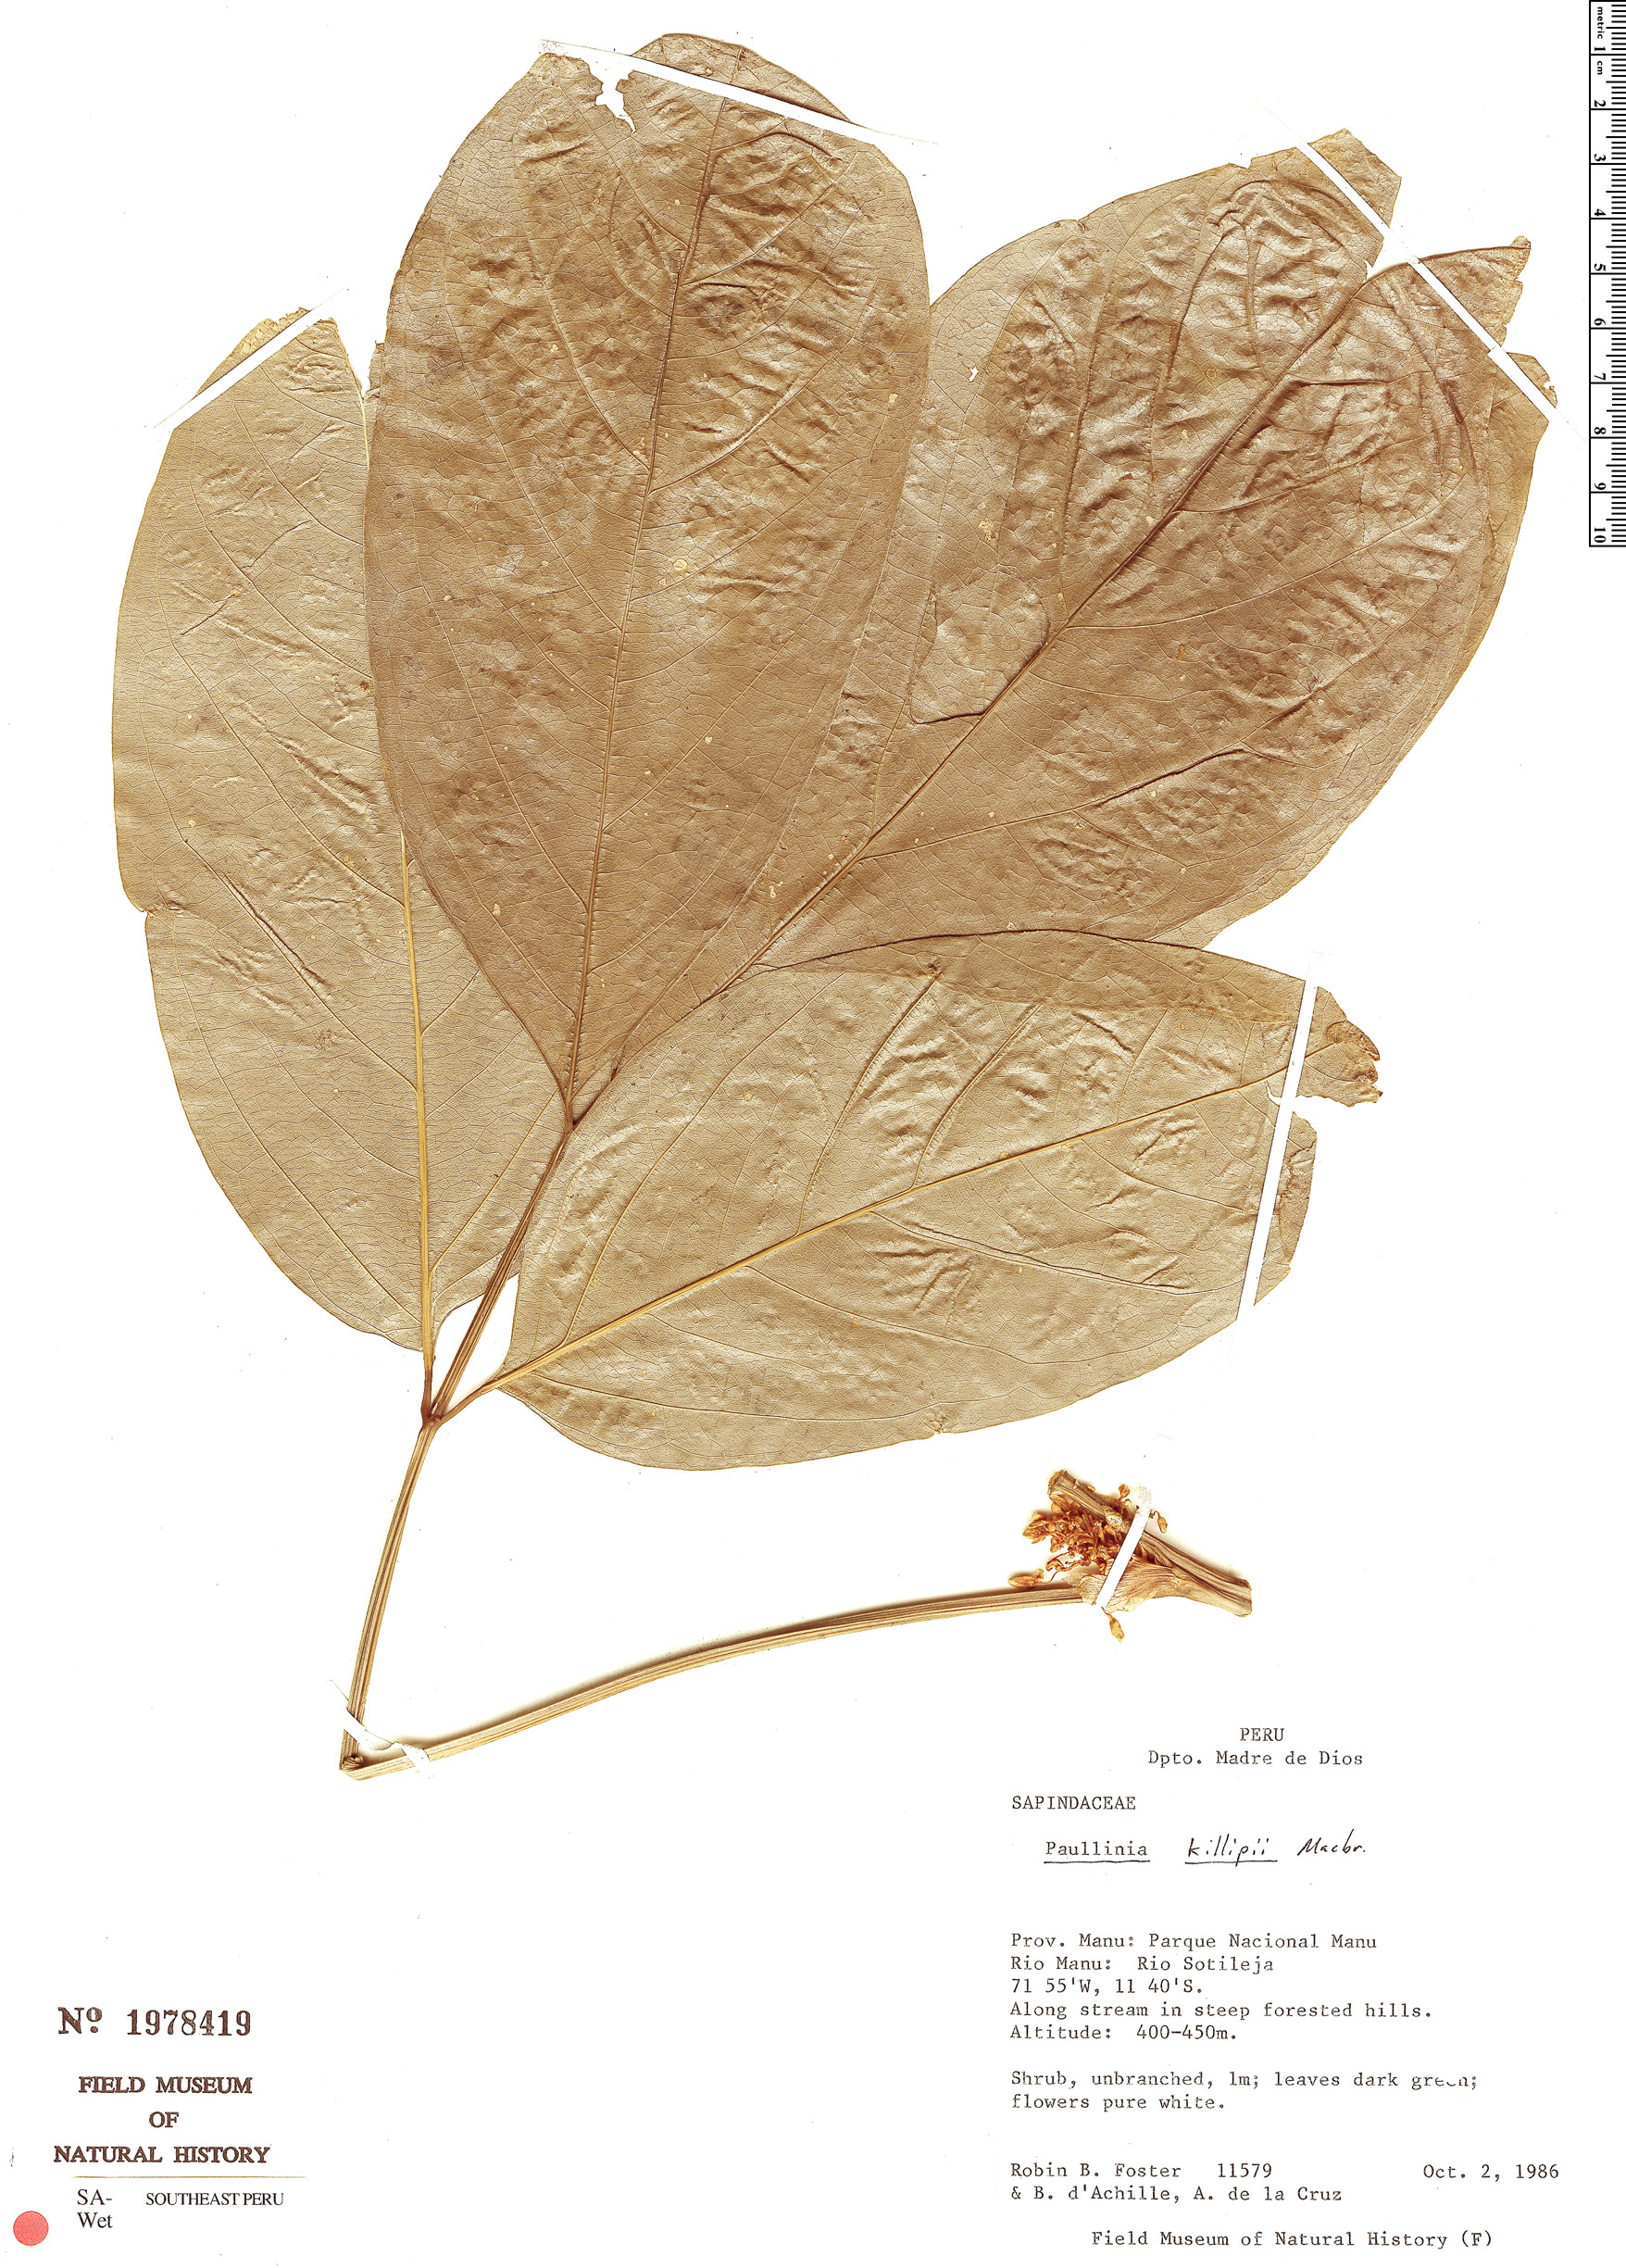 Specimen: Paullinia killipii